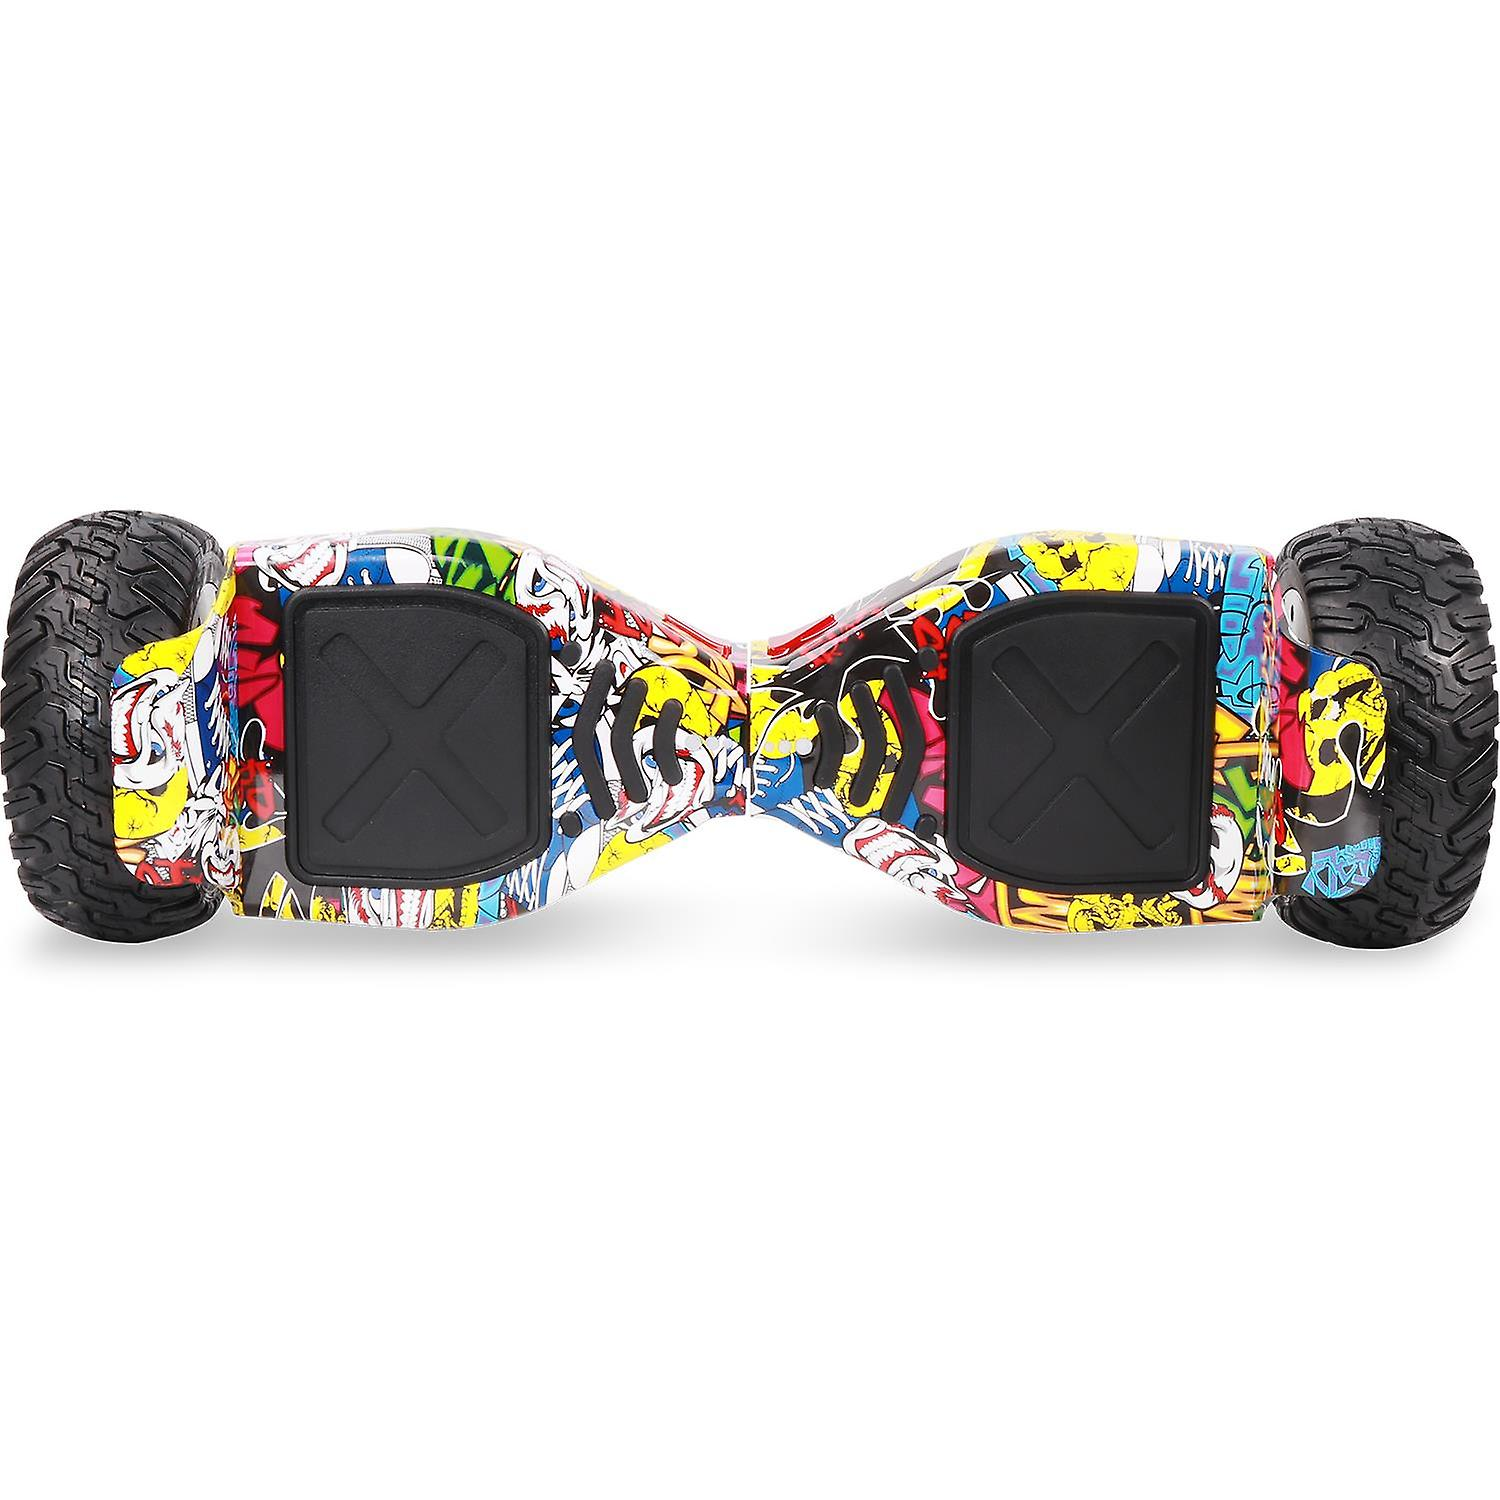 Right Choice Challenger Basic Hoverboard/ Hummer Off-Road with Bluetooth and App